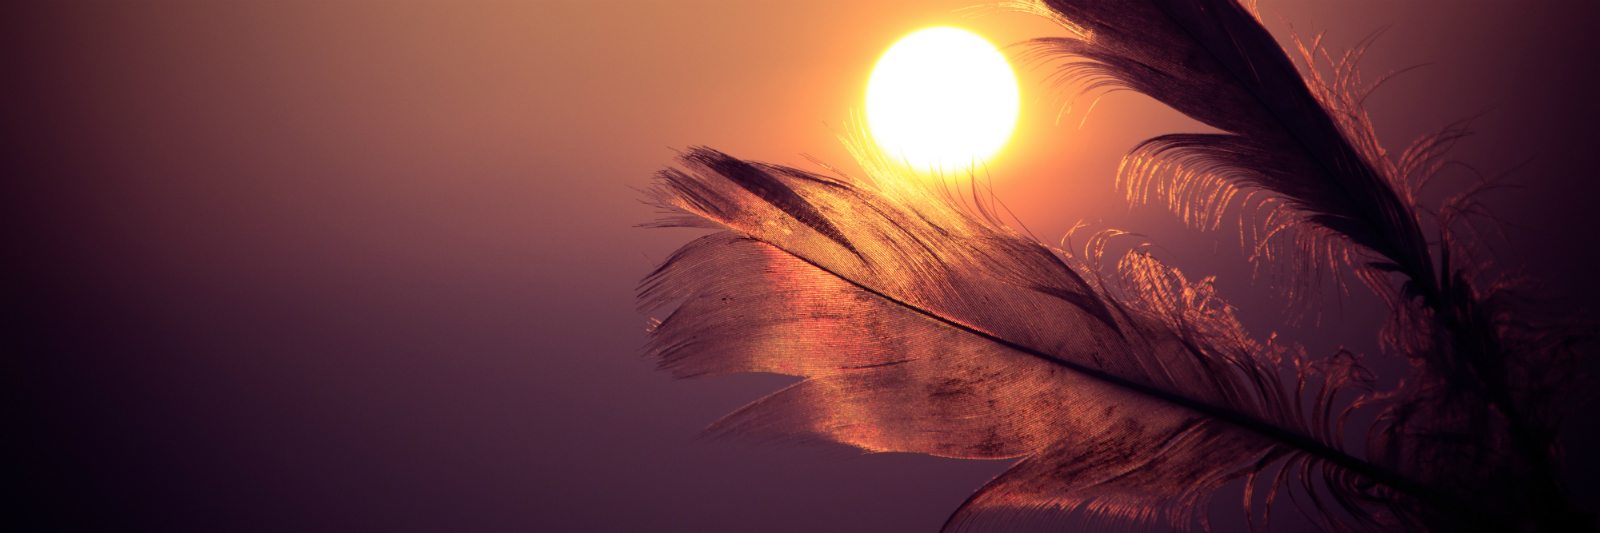 sunset-feathers.jpg